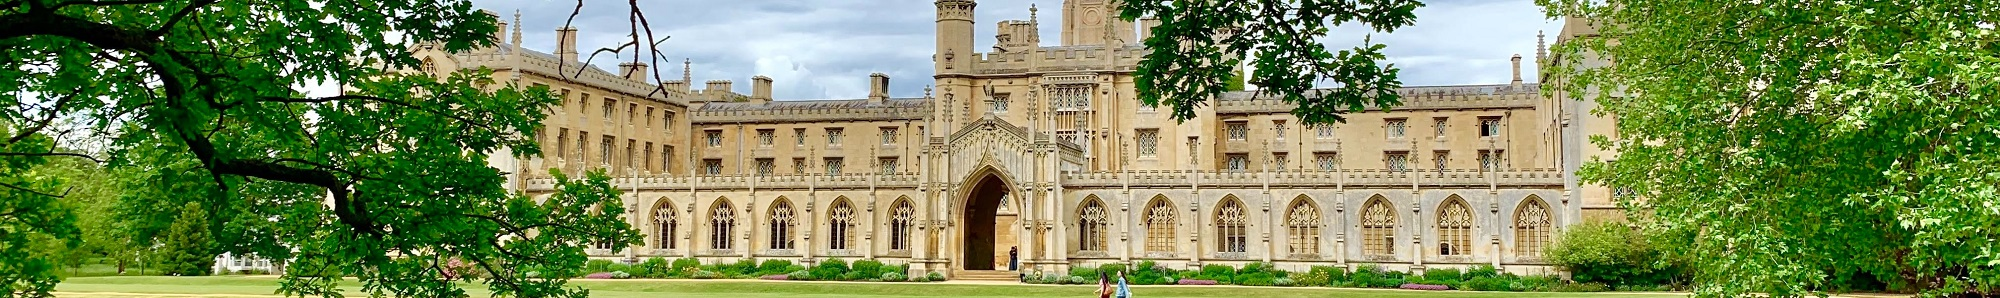 Why is the University of Cambridge so world-renowned?